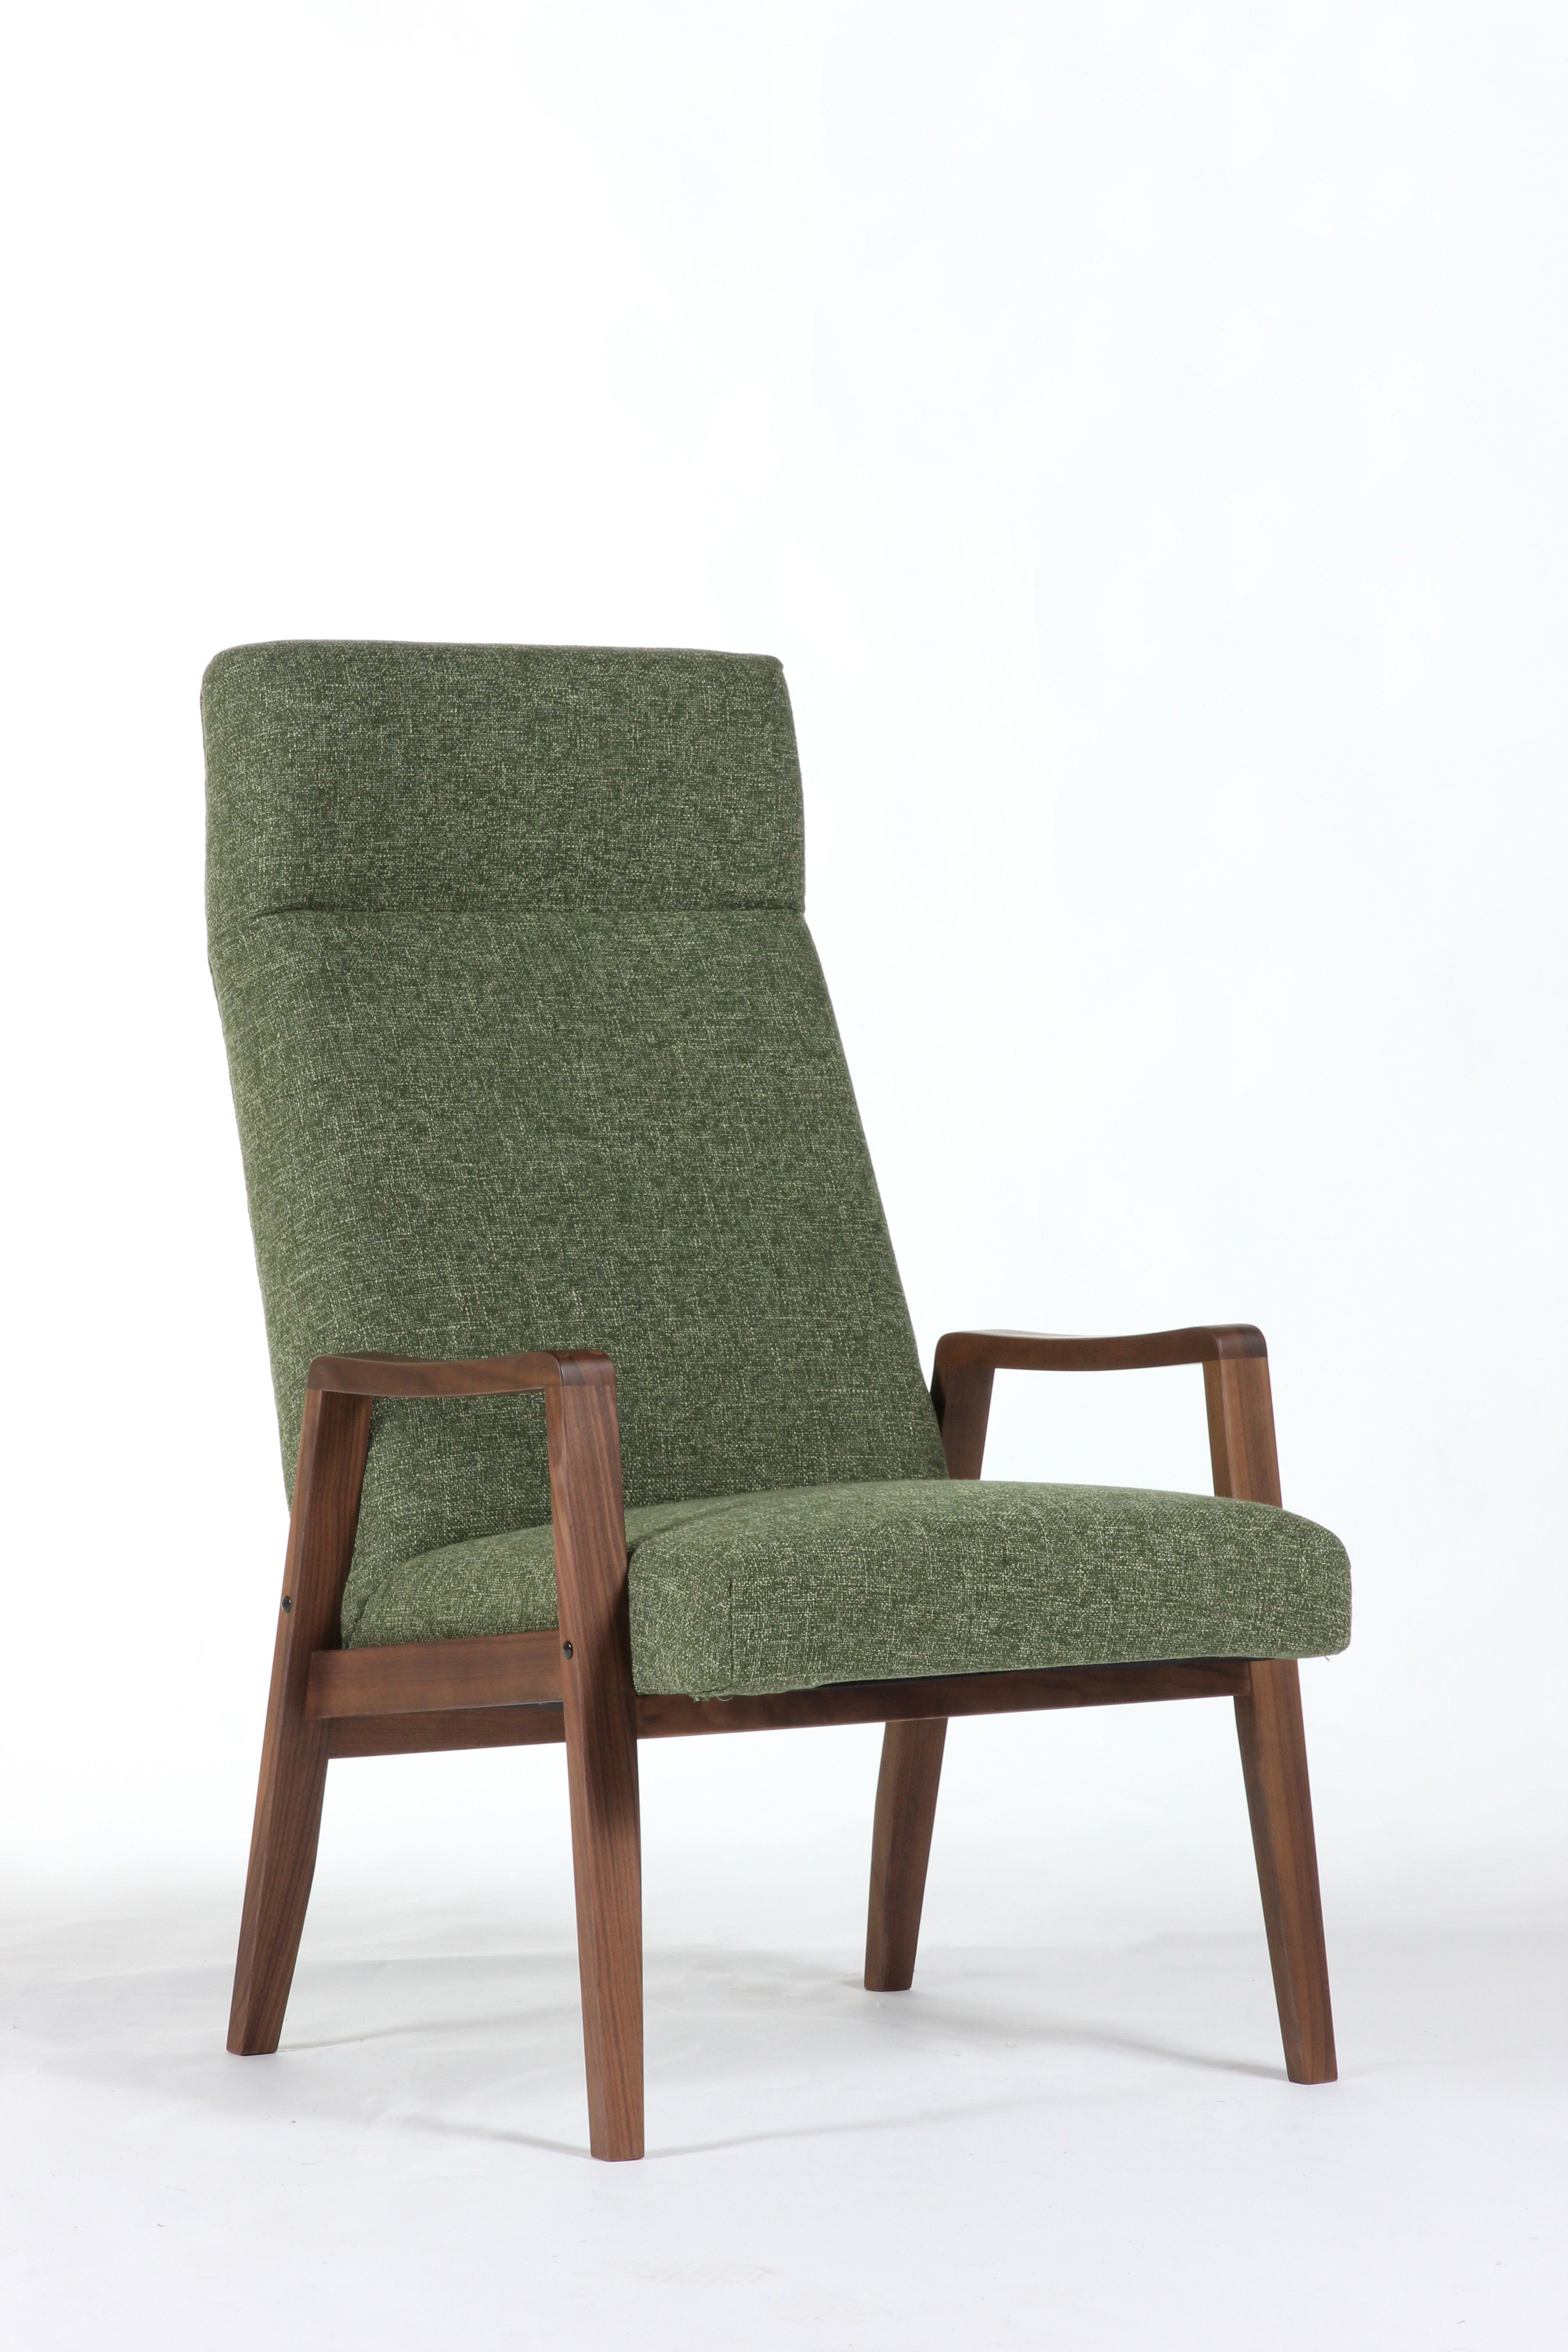 Lounge Chair For Living Room Danish Highback Flying Lounge Chair Greenhttp Wwwgoodformnyc